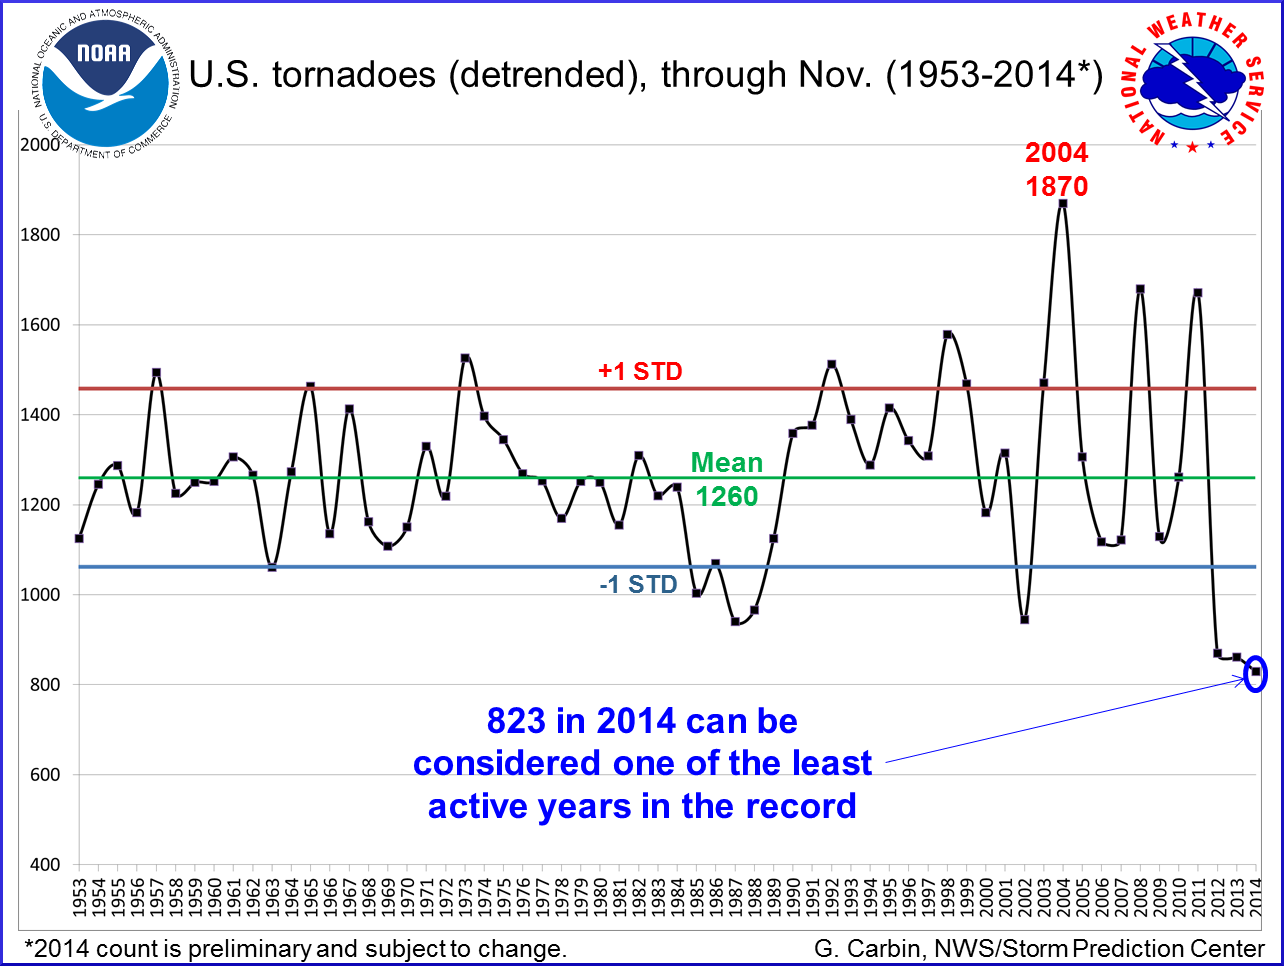 U.S. tornadoes (detrended), through November 1953 to 2014